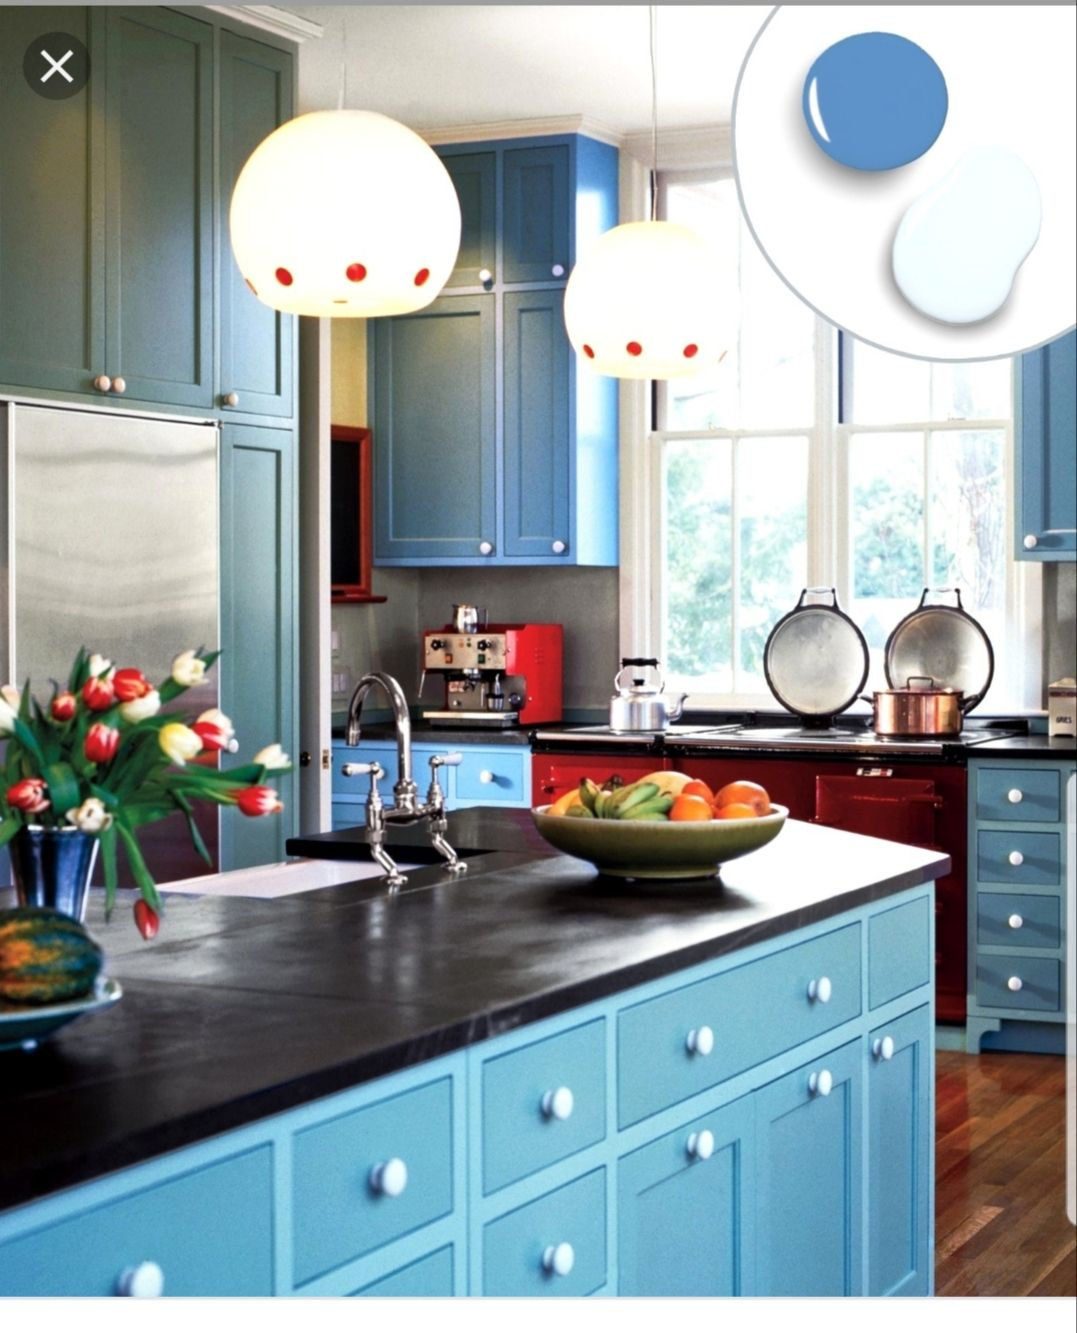 Kitchen cabinets two tone Teal Turquoise | Kitchen ...